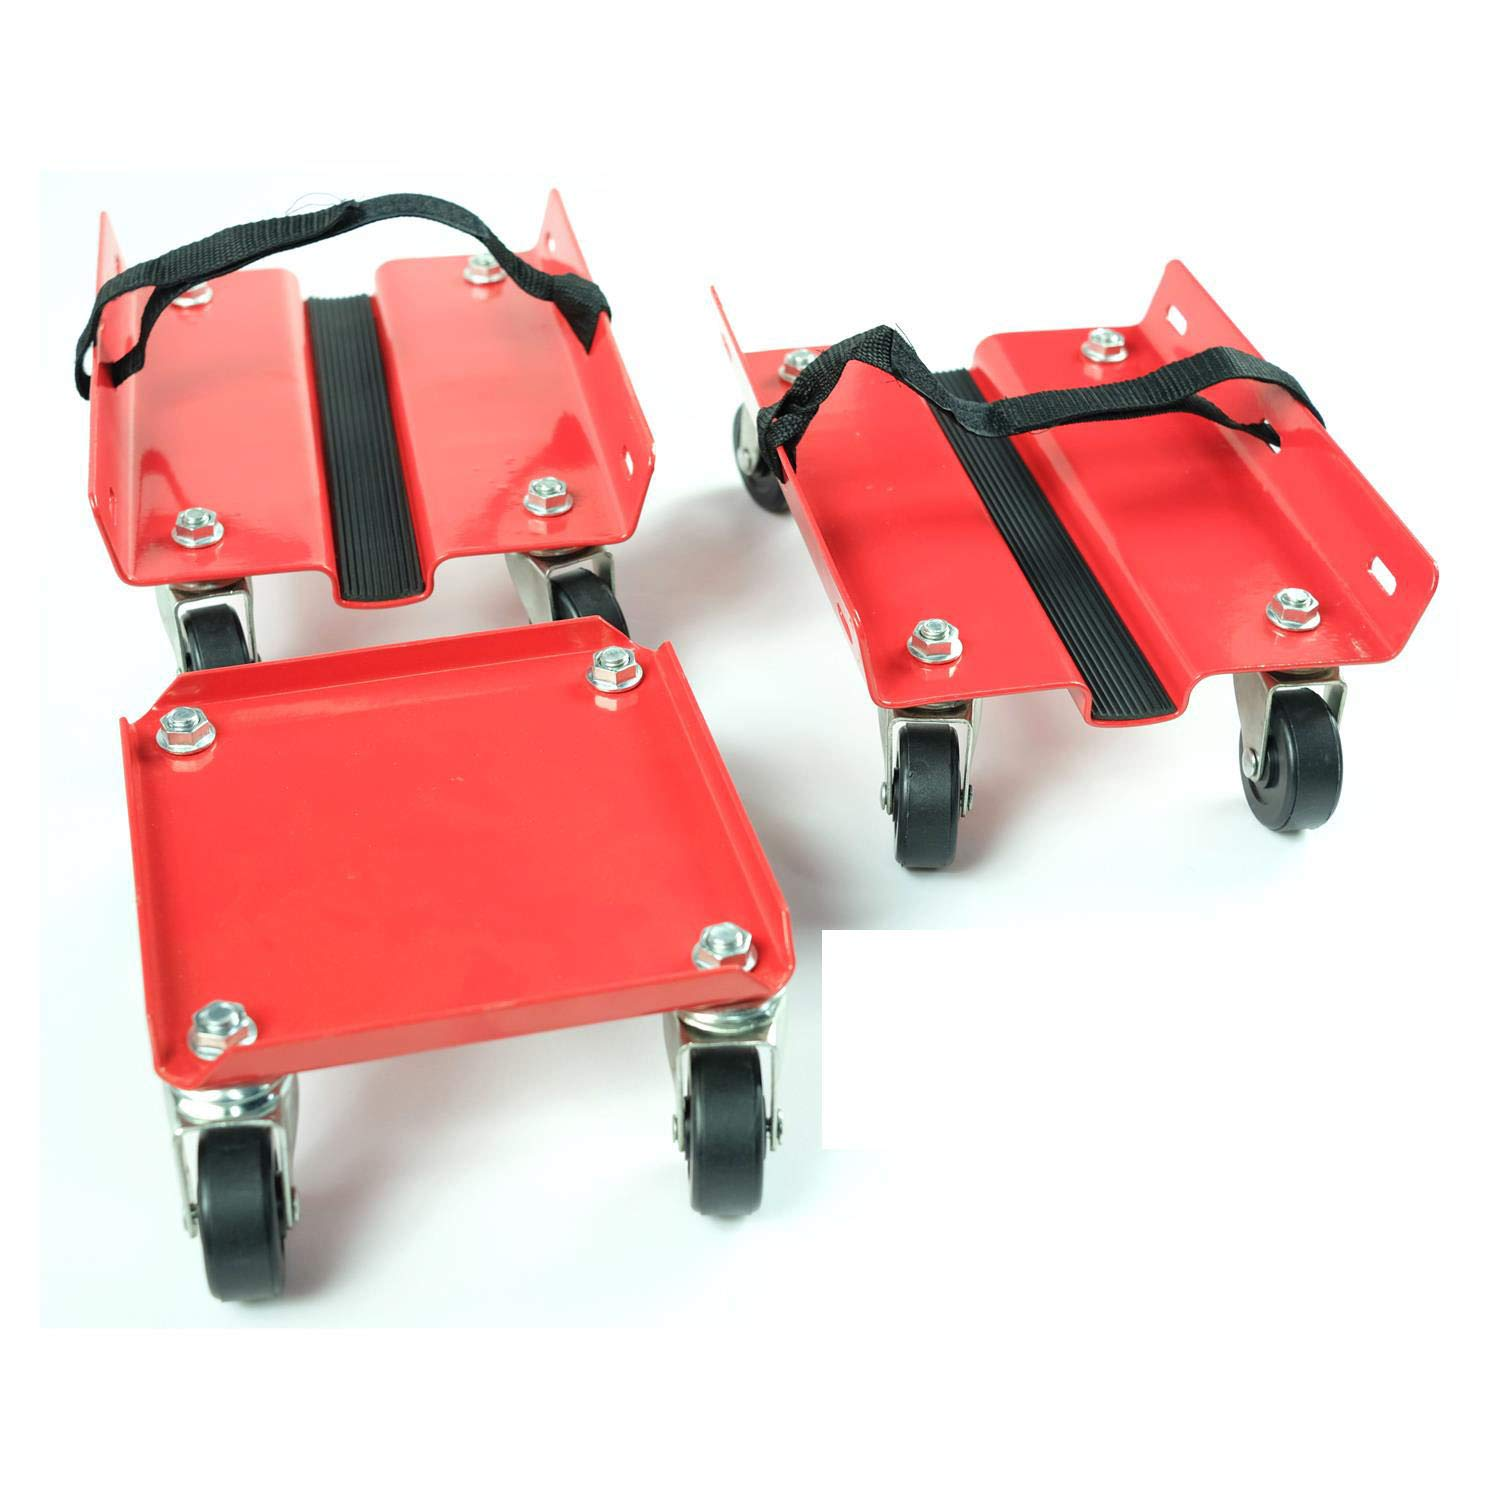 KASTFORCE KF2011 Snowmobile Dolly Set Max Supporting 1500Lbs with Heavy Duty Straps Firmly Attaching on Skis by KASTFORCE